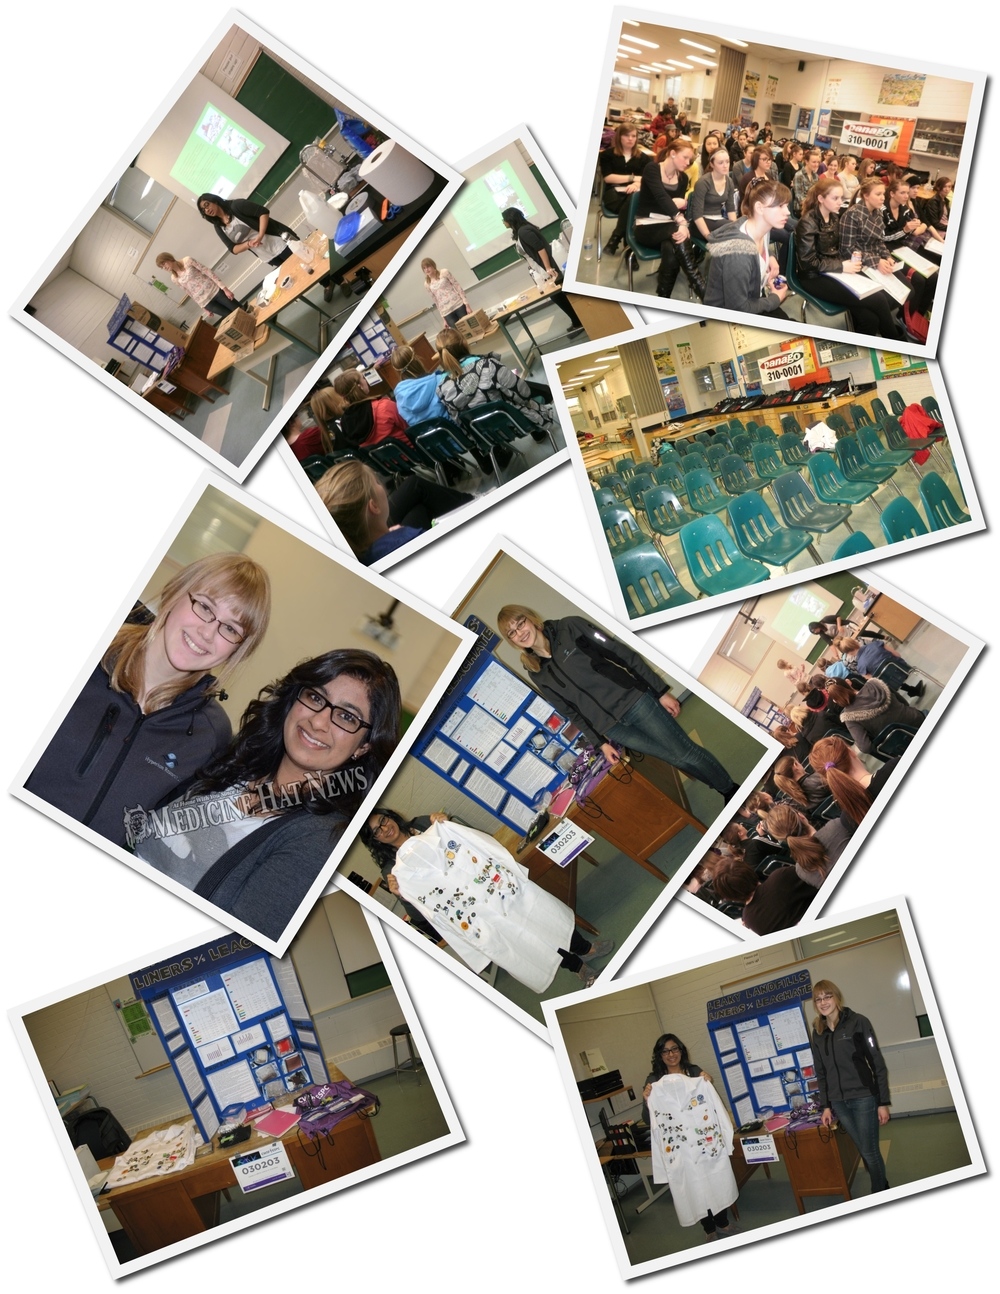 2012-01-30 Operation Minerva Science Fair Collage.JPG